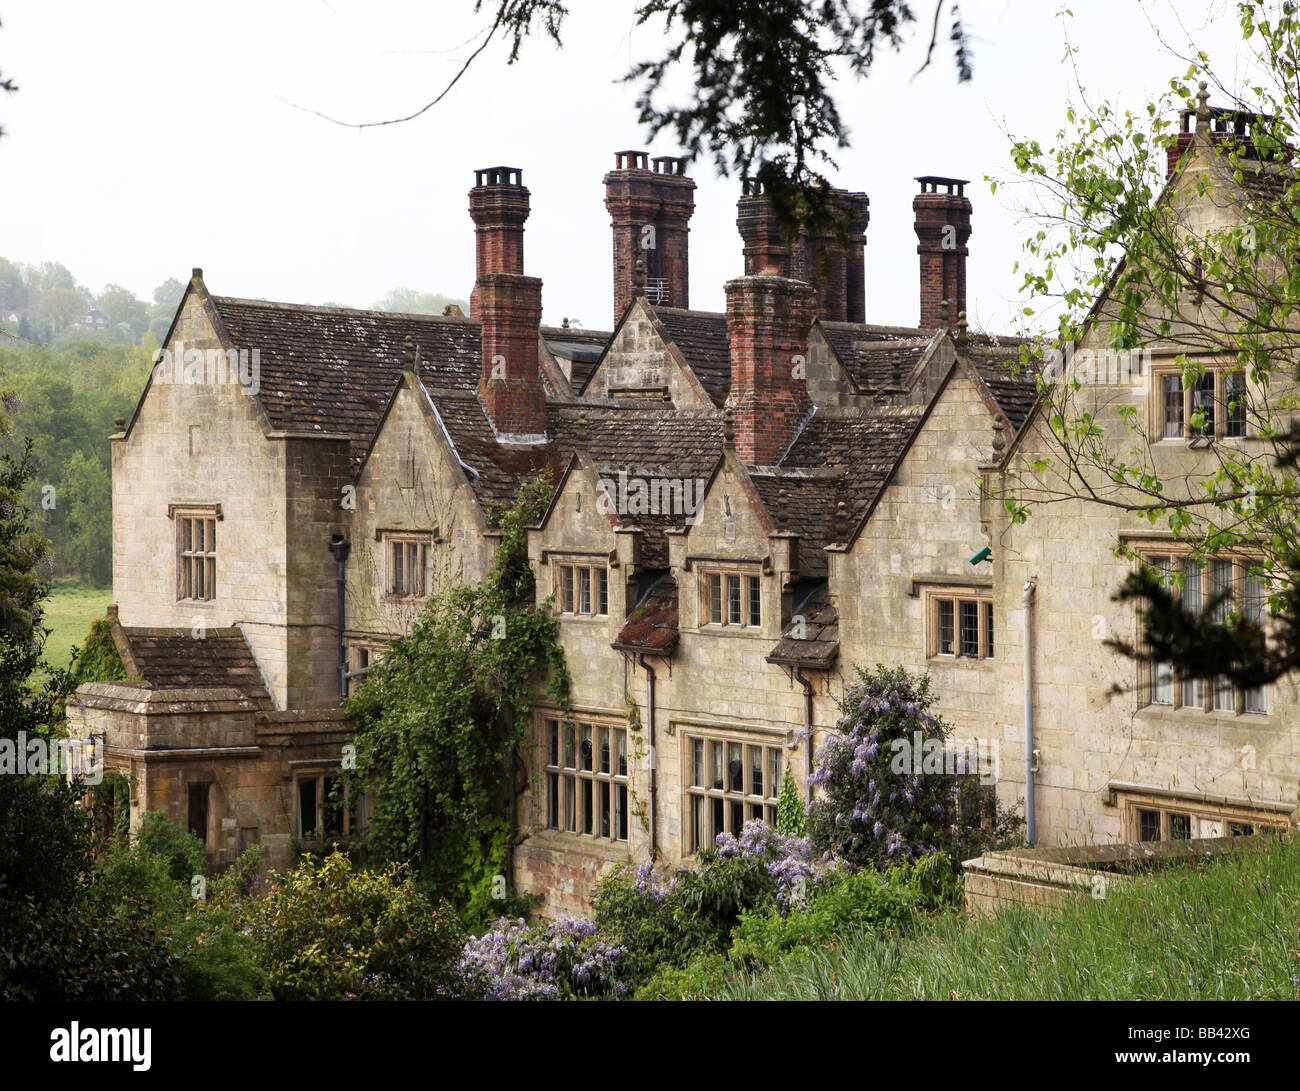 Victorian facade of Gravetye Manor Elizabethan manor house home to William Robinson until 1935 now a country house - Stock Image